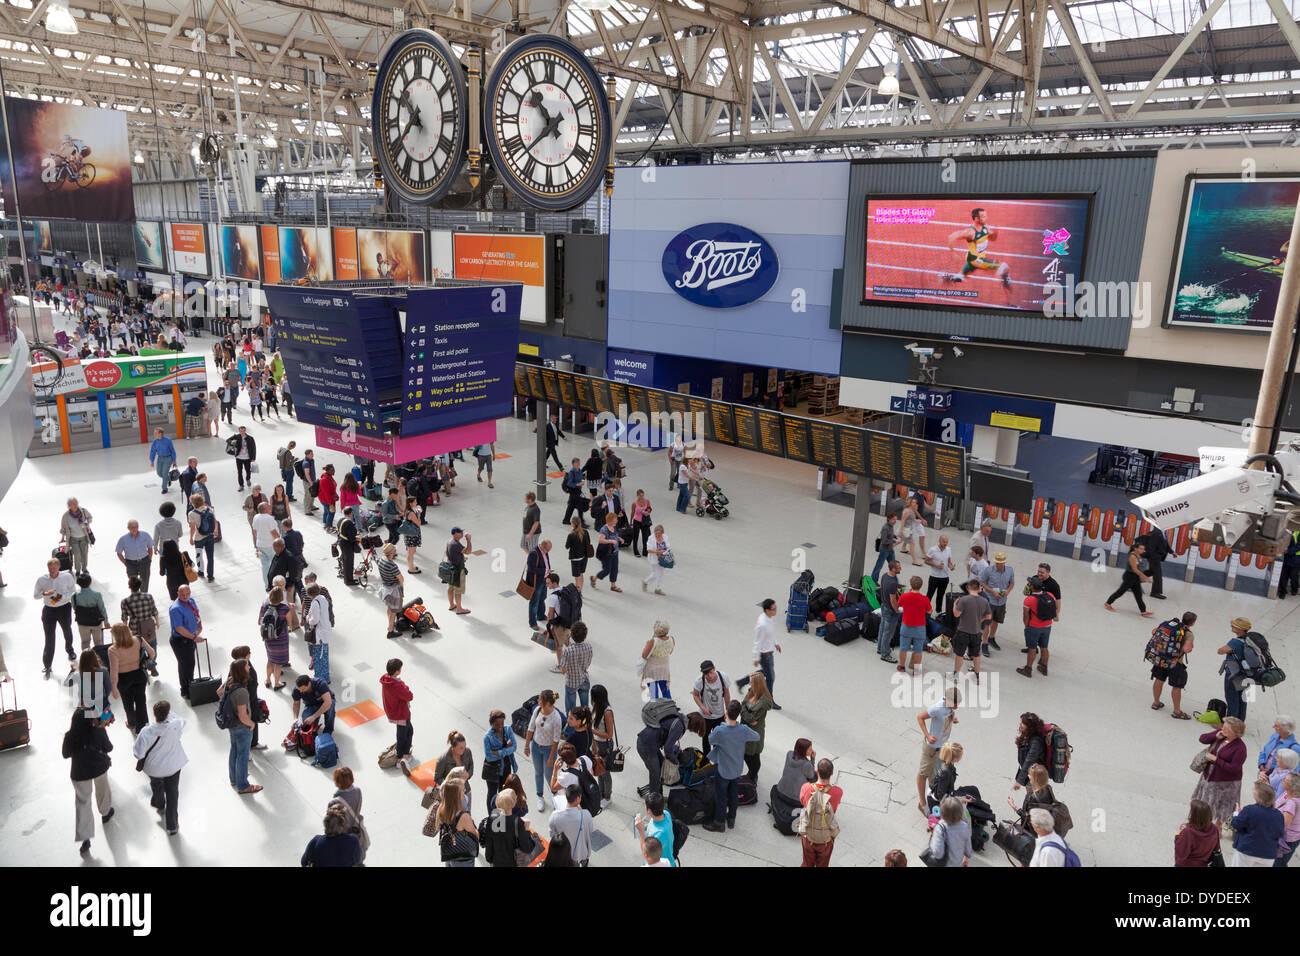 Under the clock at Waterloo Station concourse in London from a high viewpoint. - Stock Image